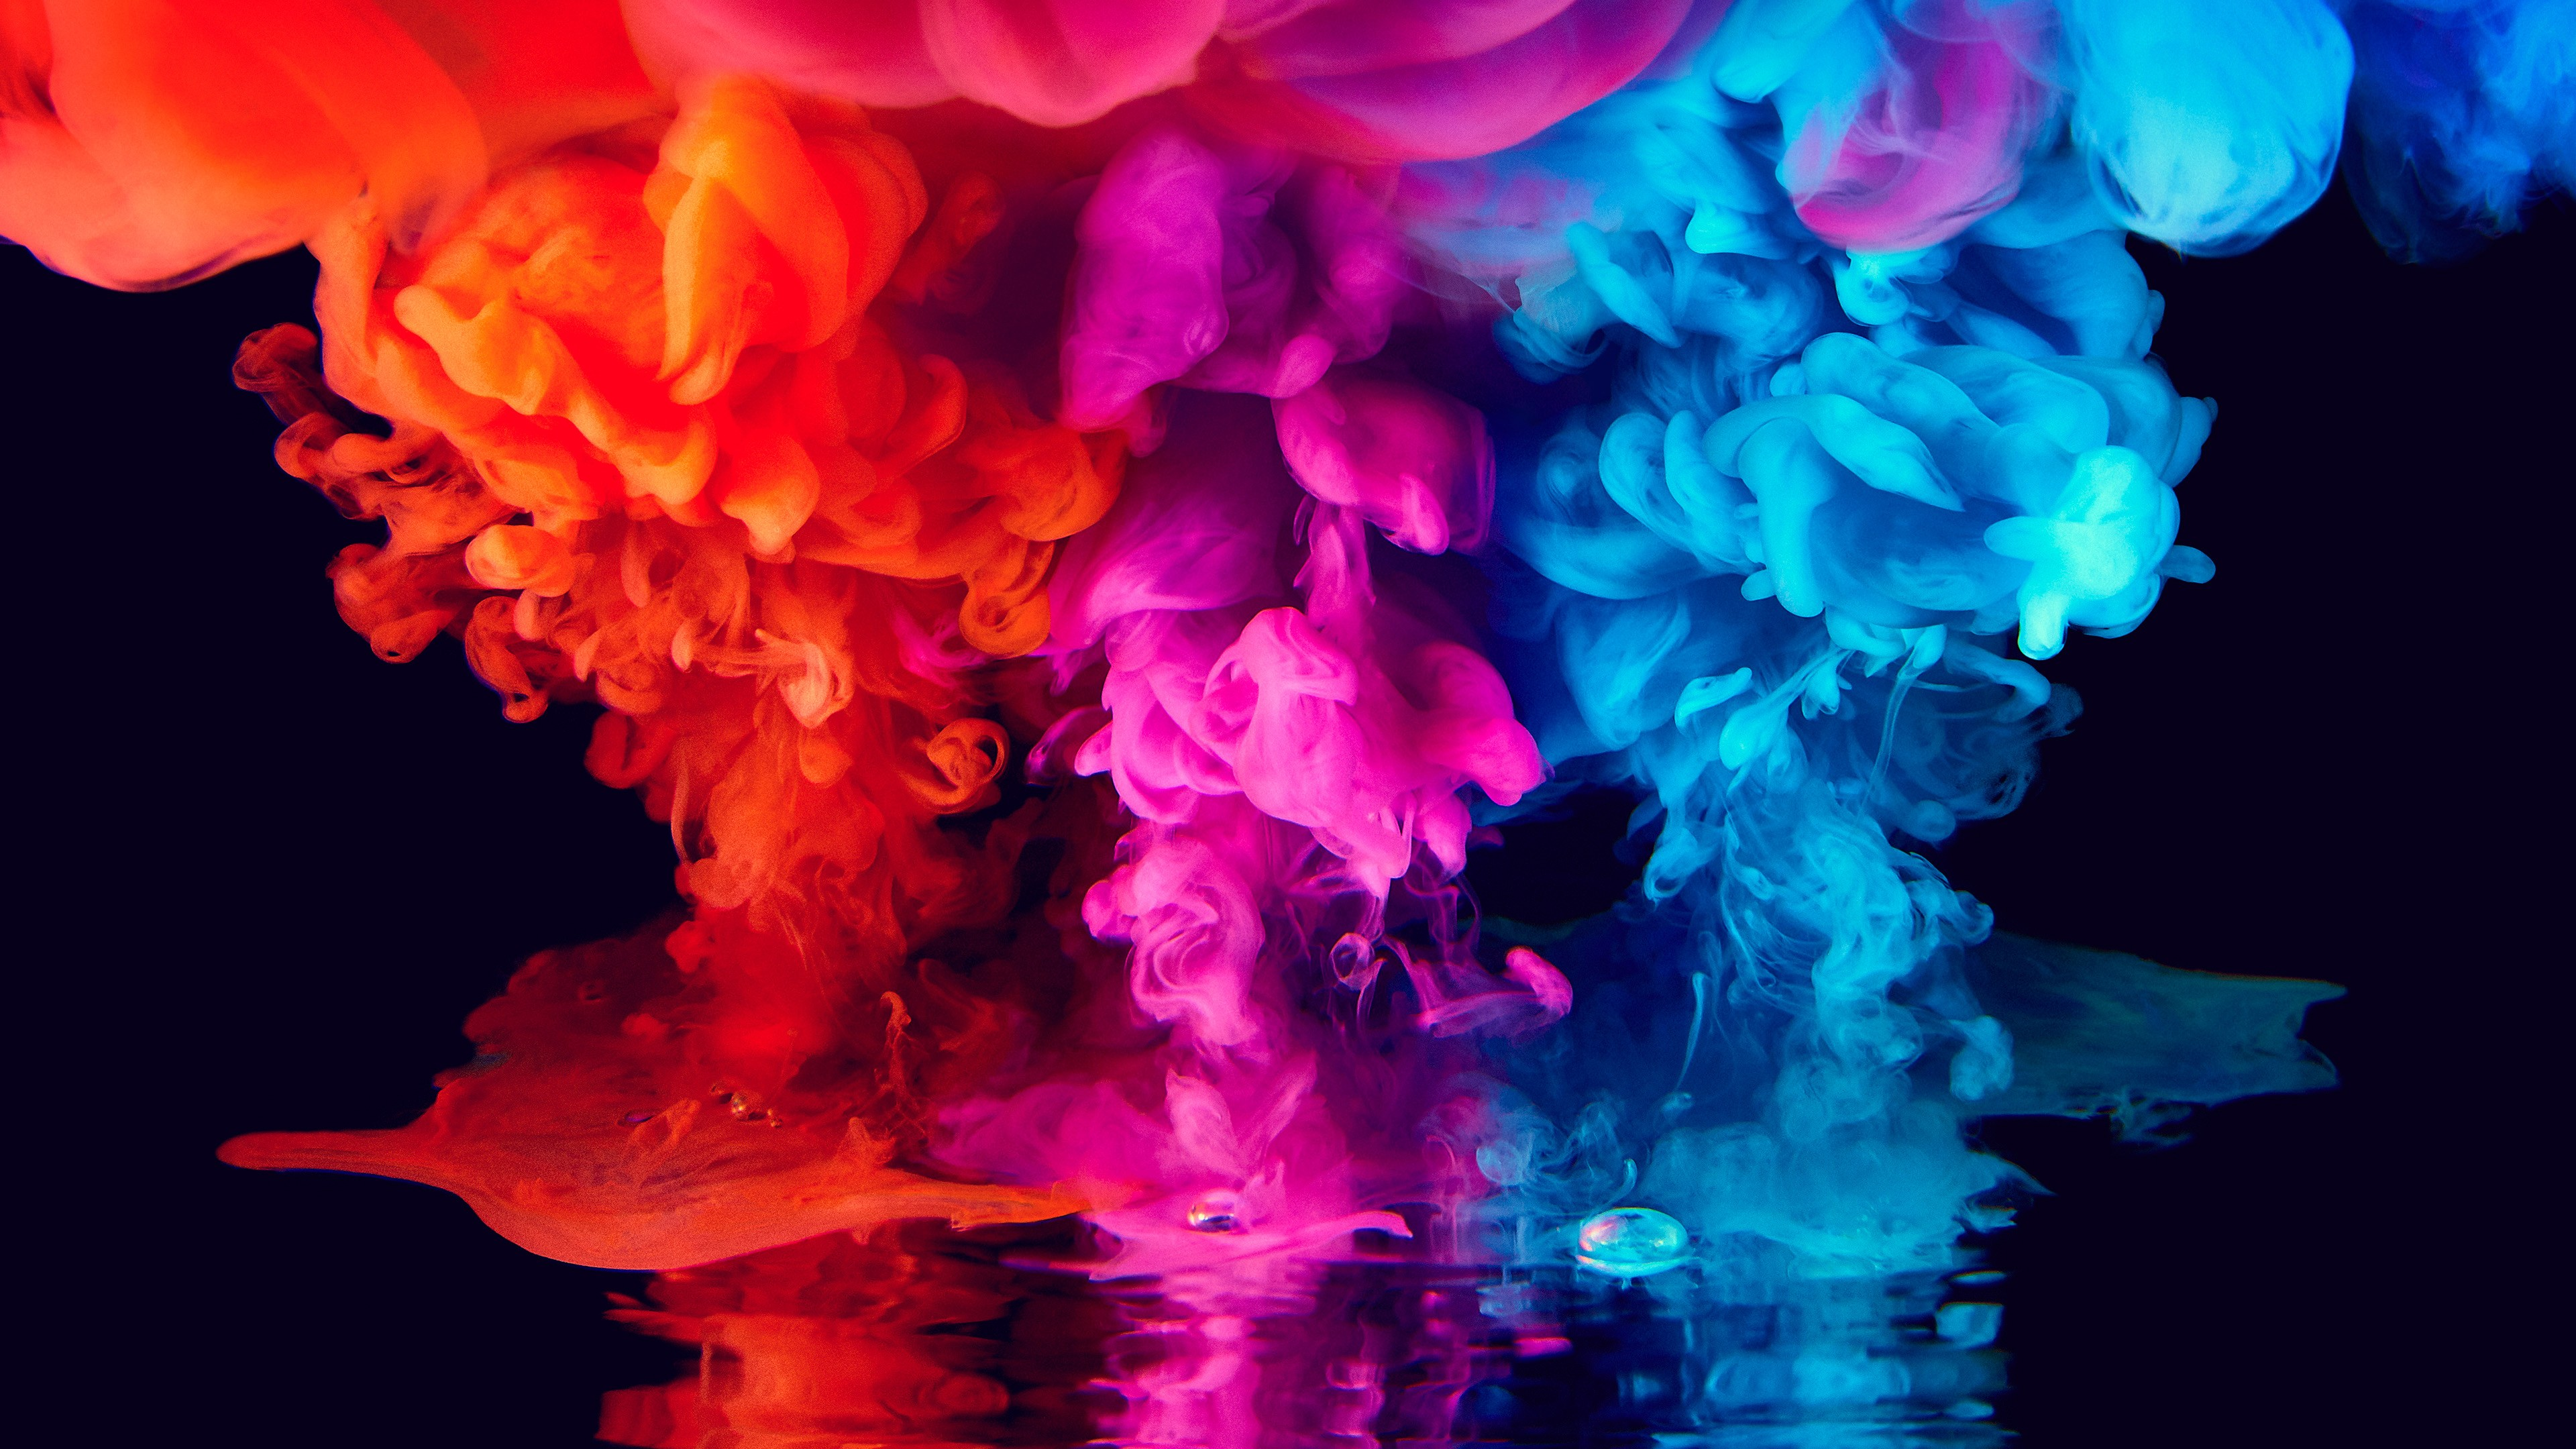 Cute Colour Wallpaper Colorful Smoke 4k Wallpapers Hd Wallpapers Id 27972